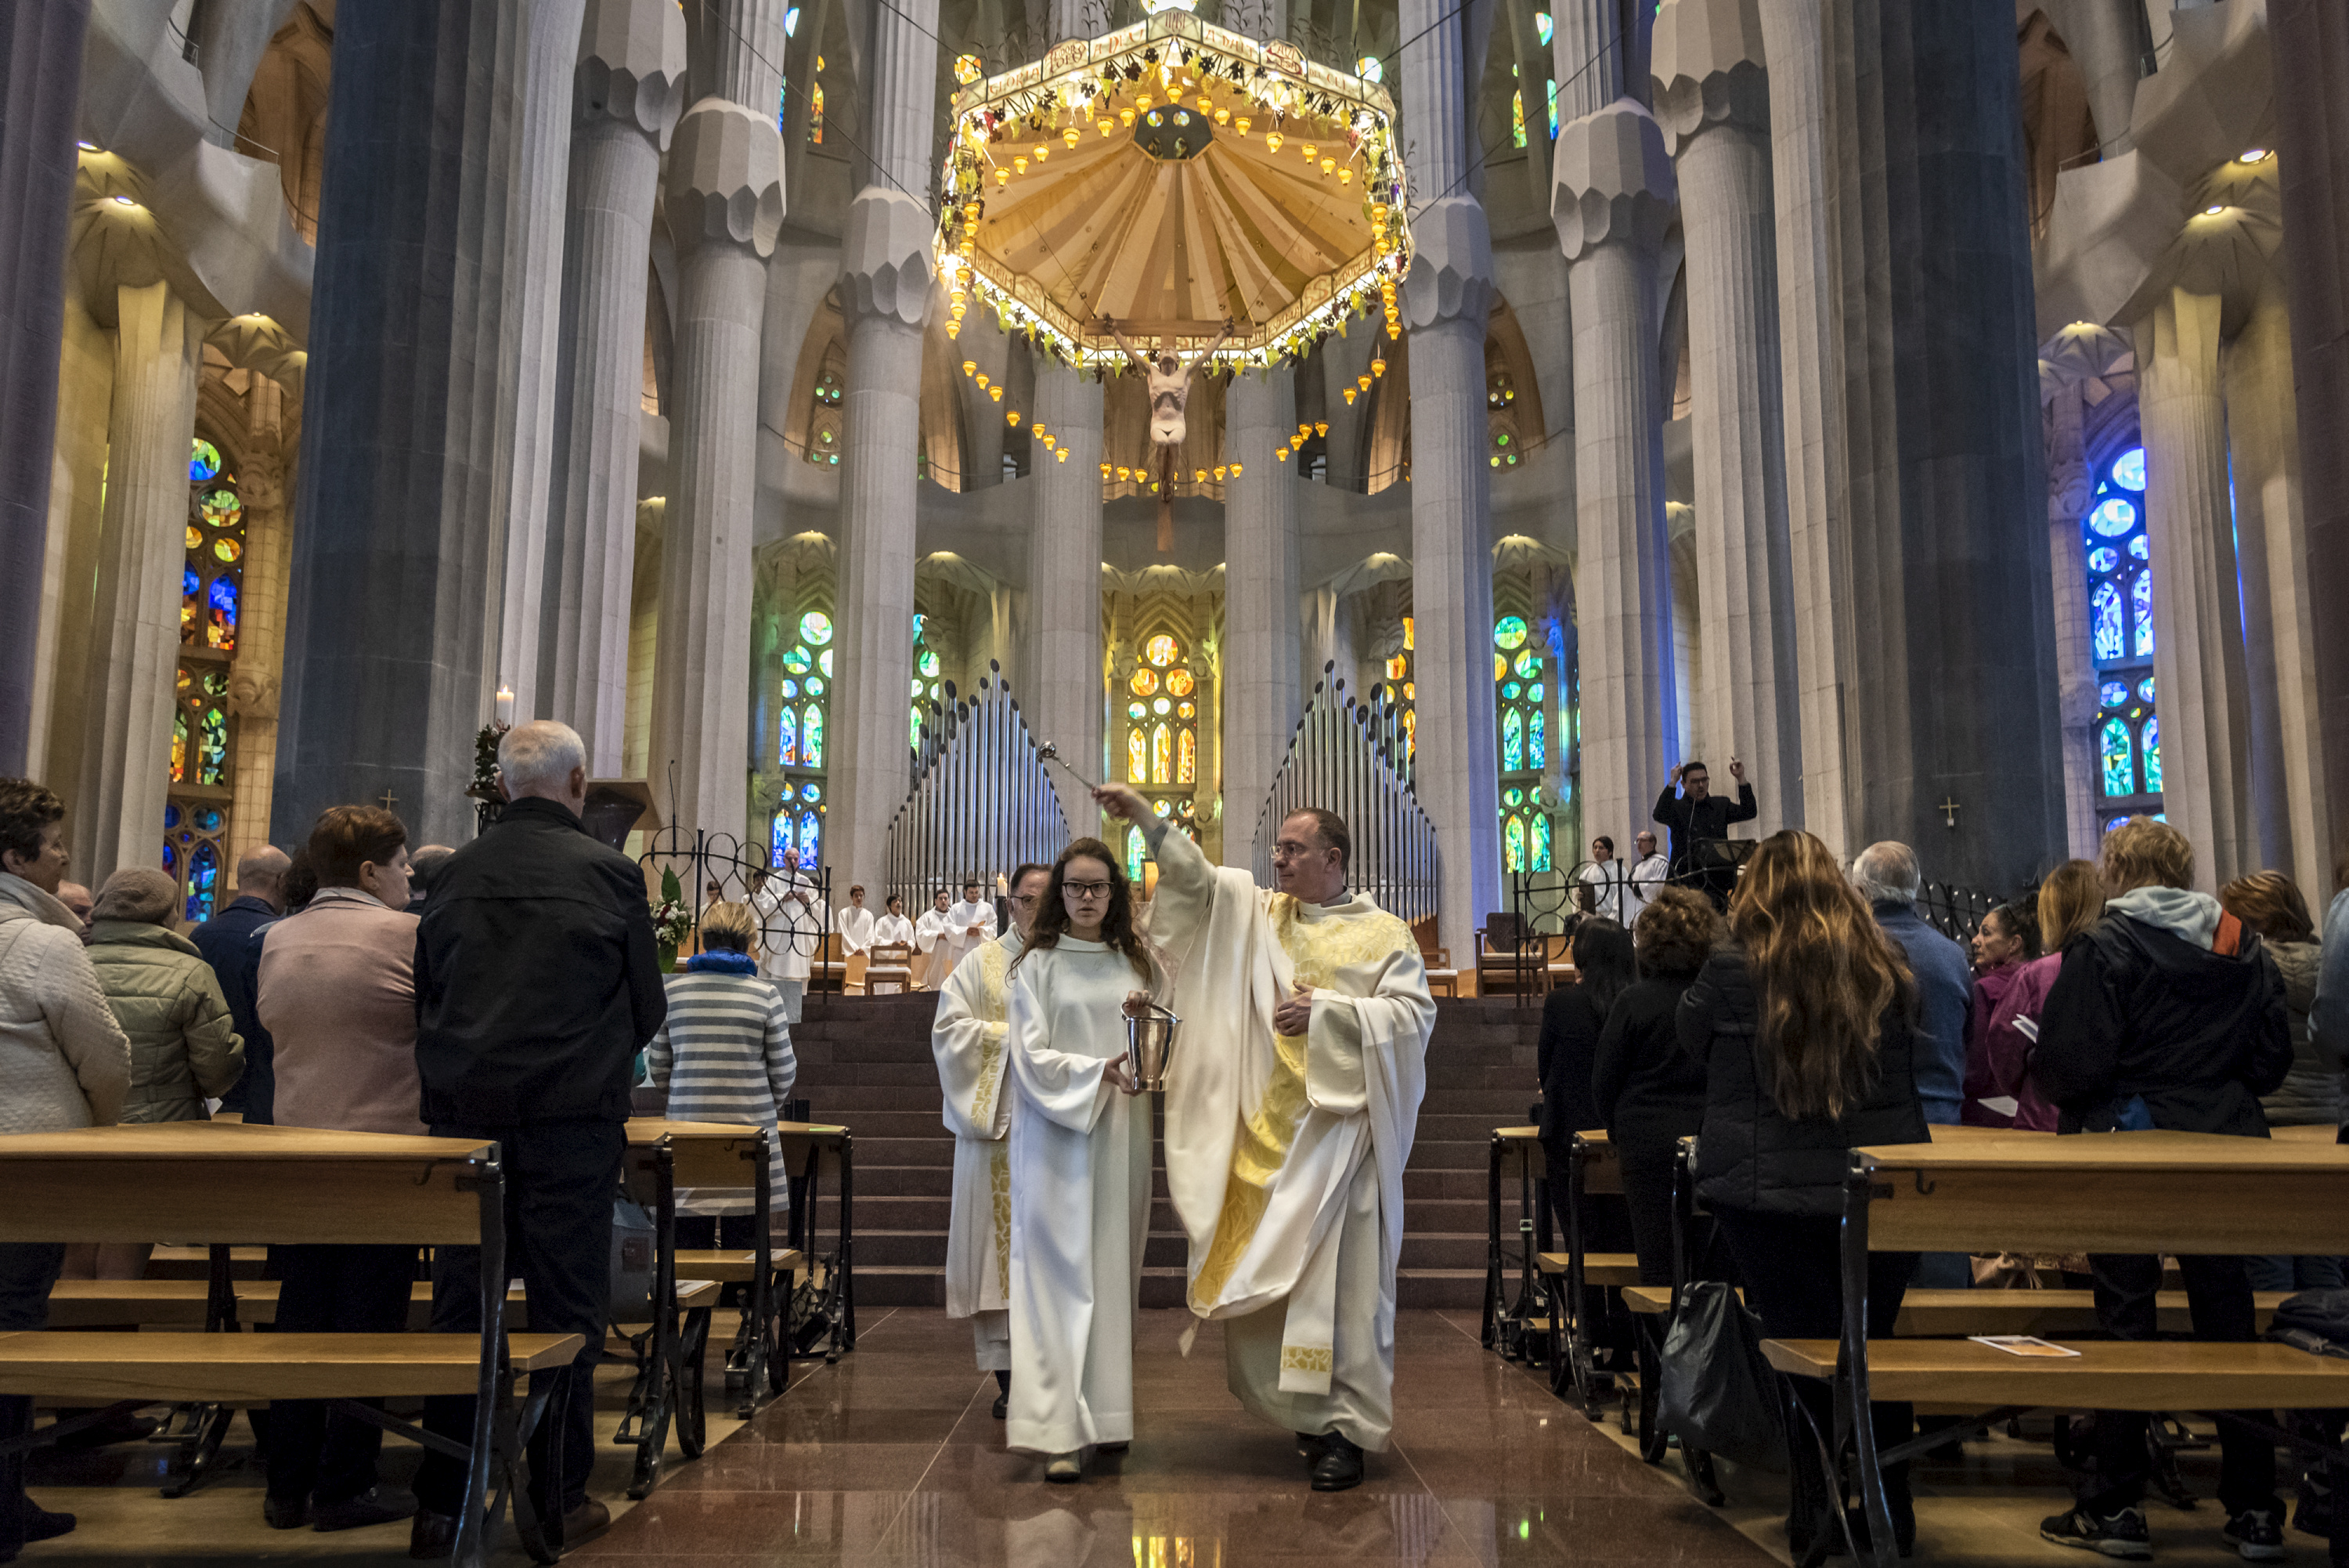 The Sagrada Família is adding a second international mass to its liturgical calendar